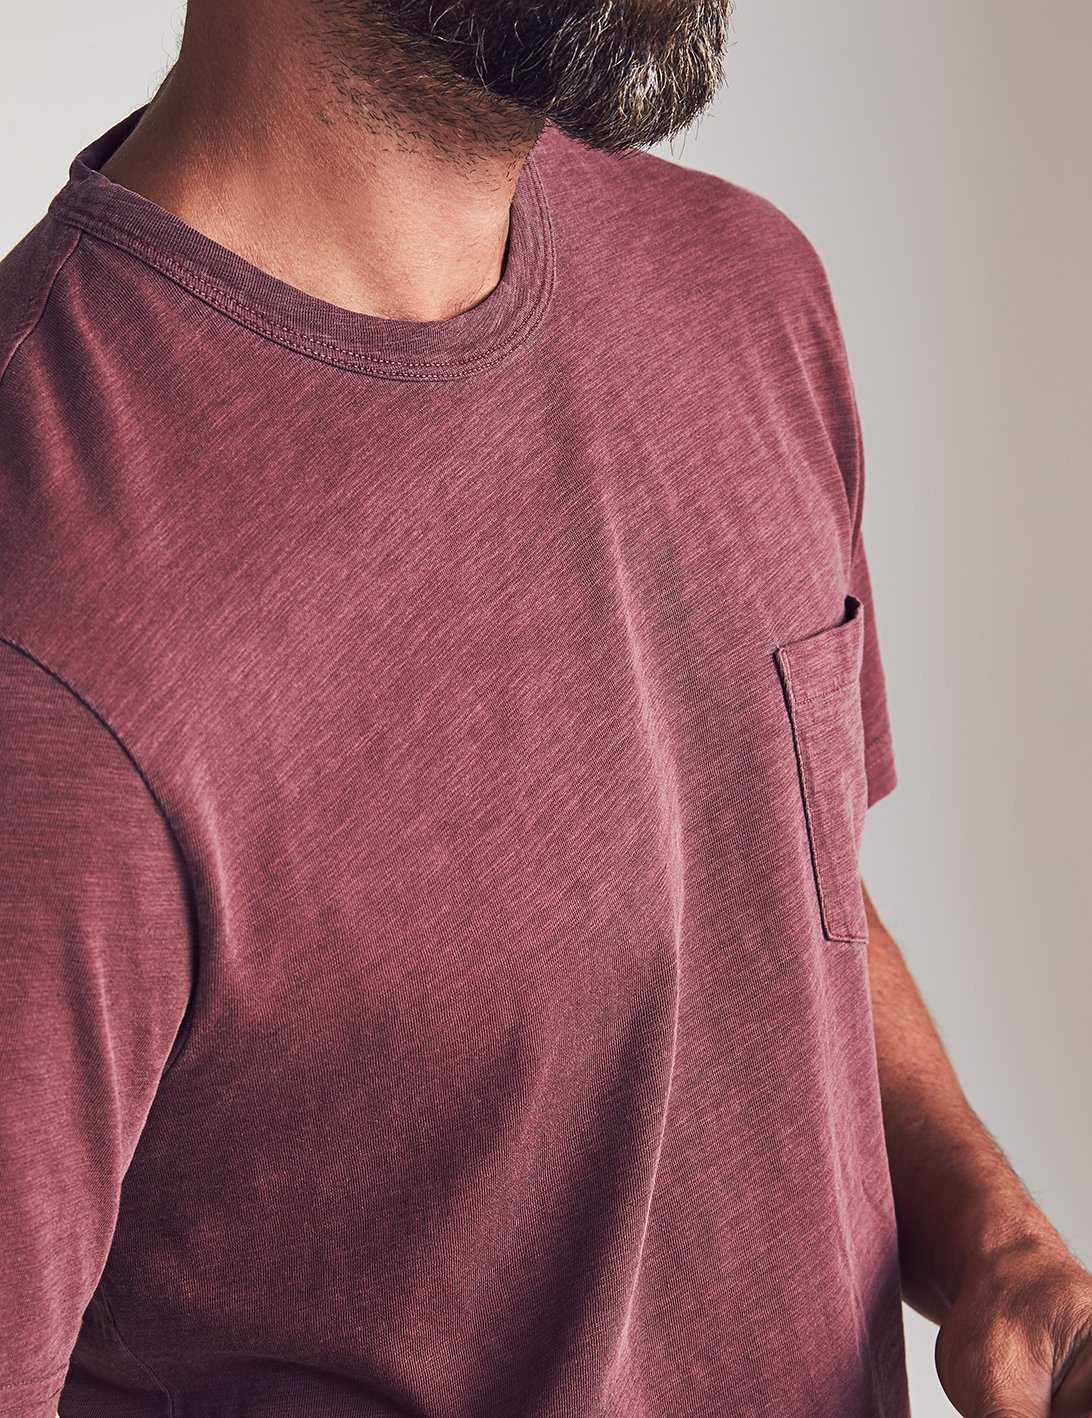 Sunwashed Pocket Tee - Merlot